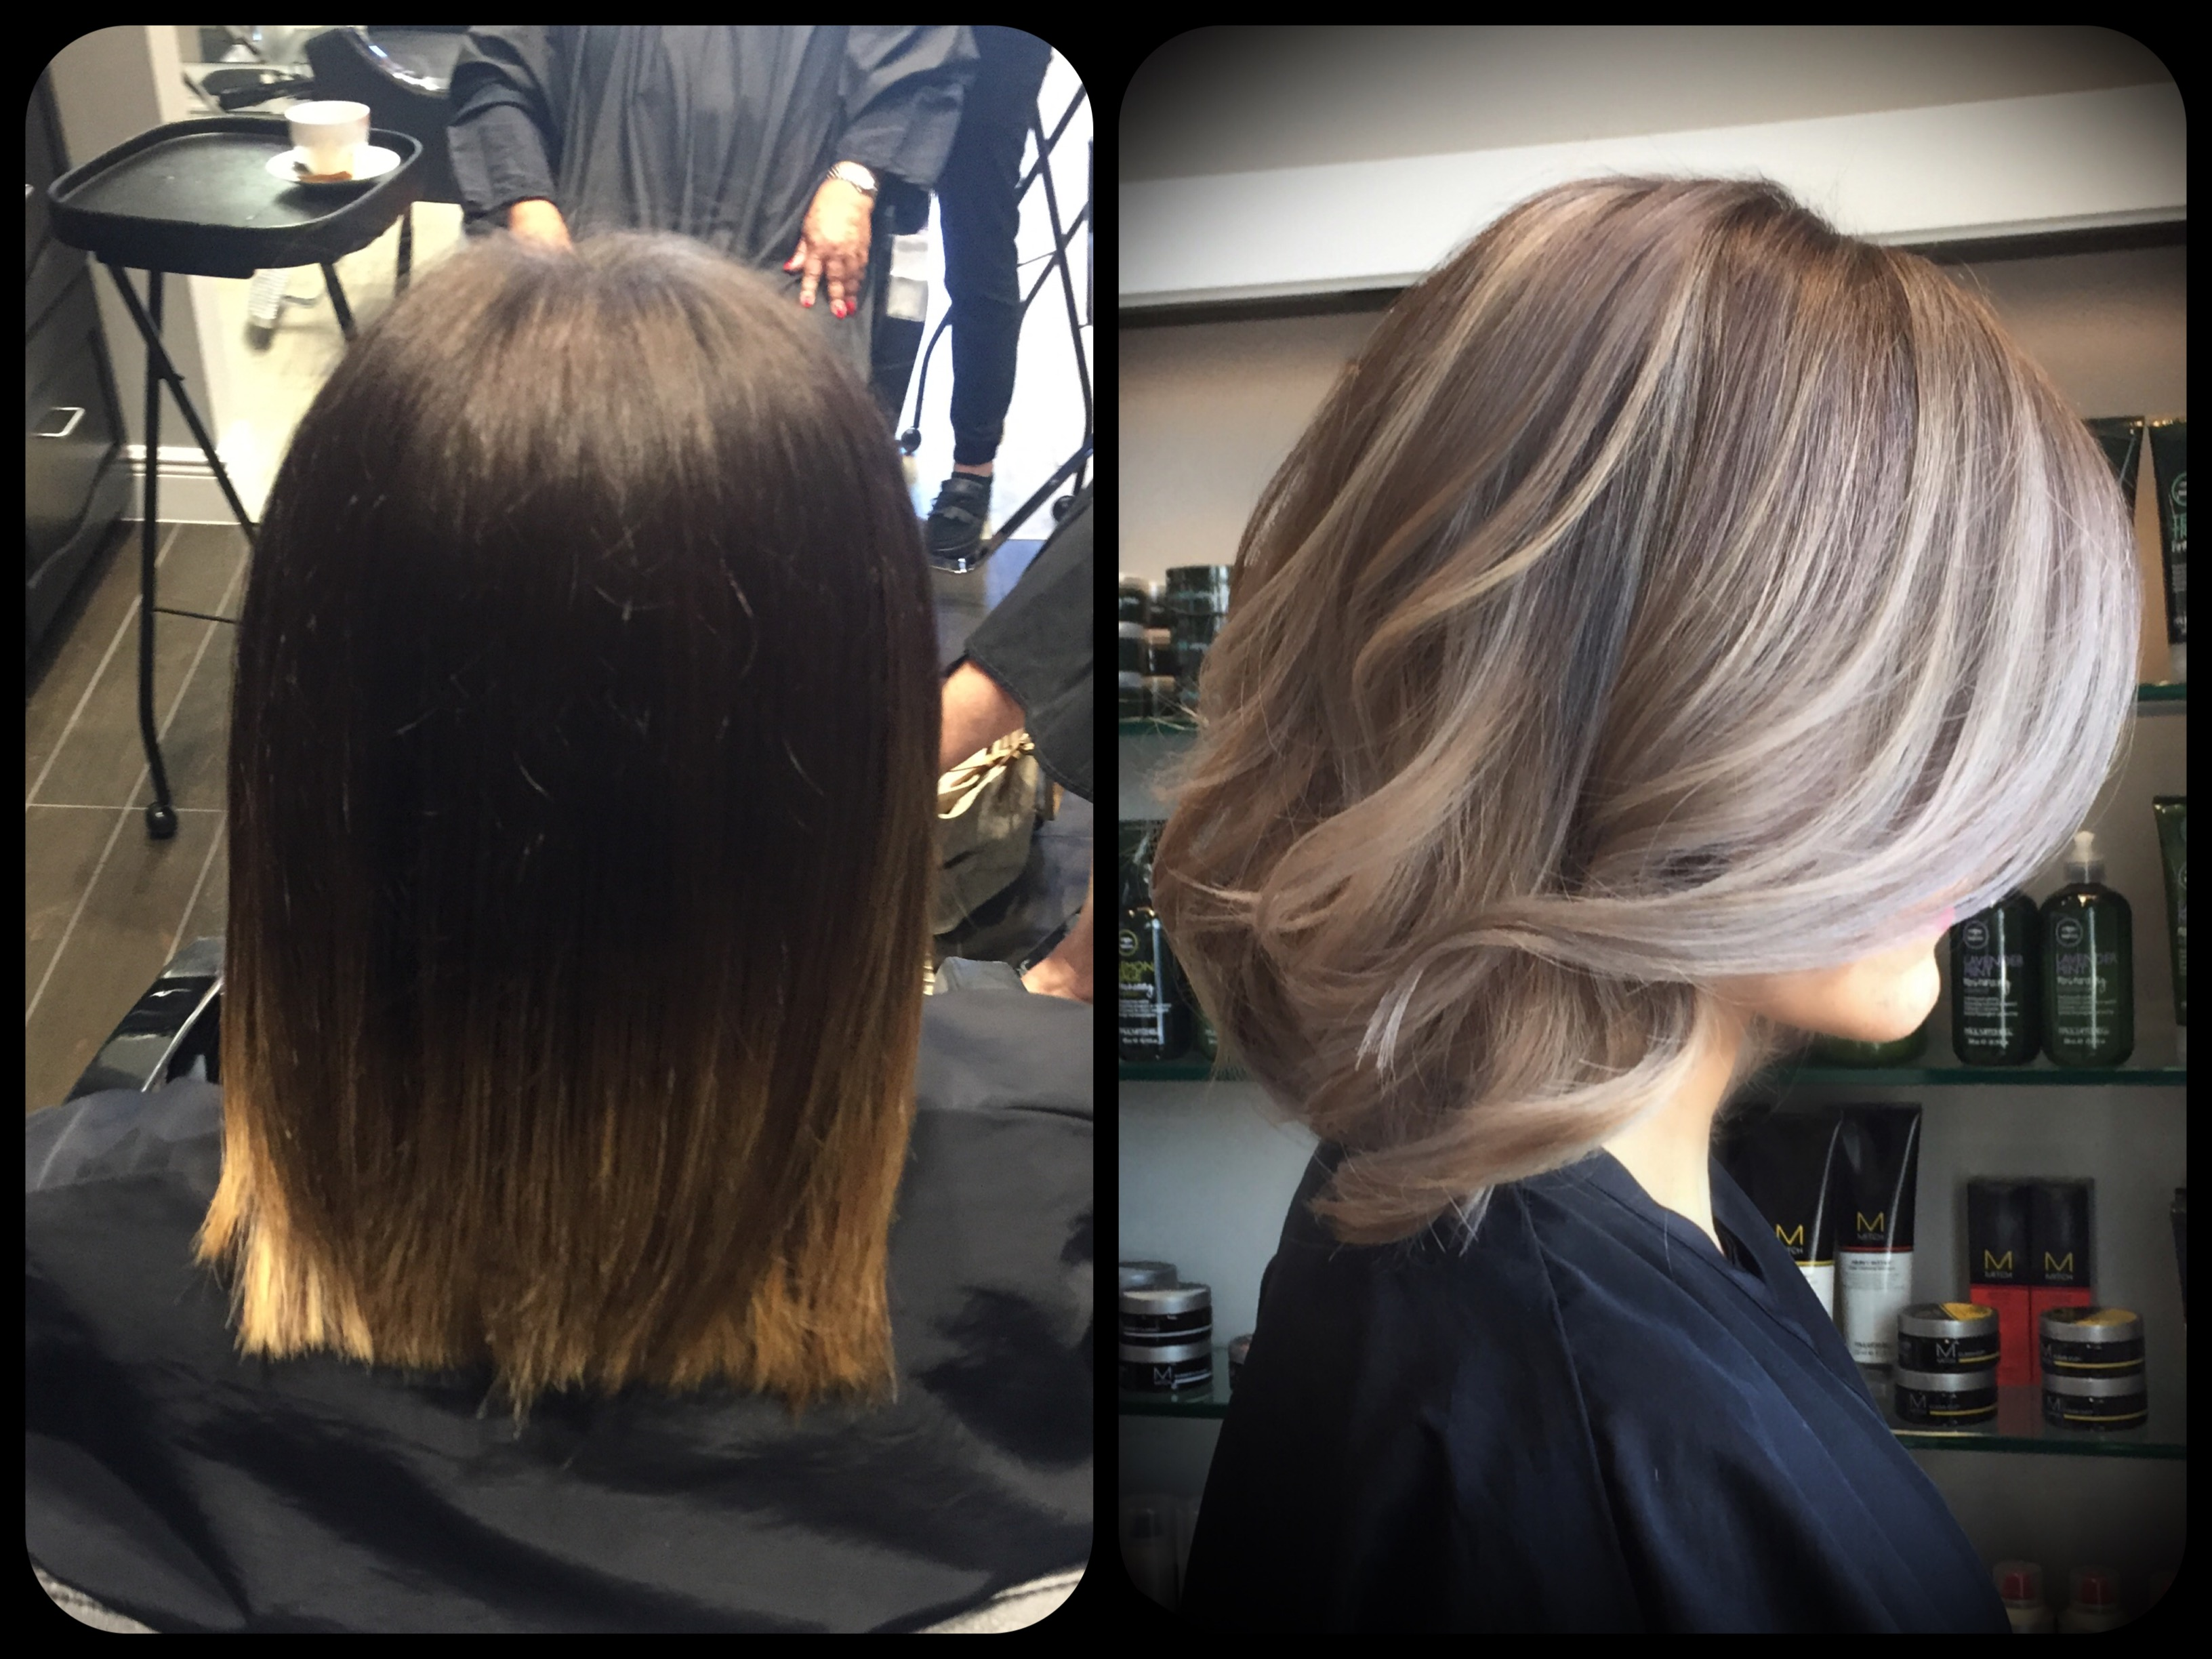 TRANSFORMATION: Going Chrome - Career - Modern Salon